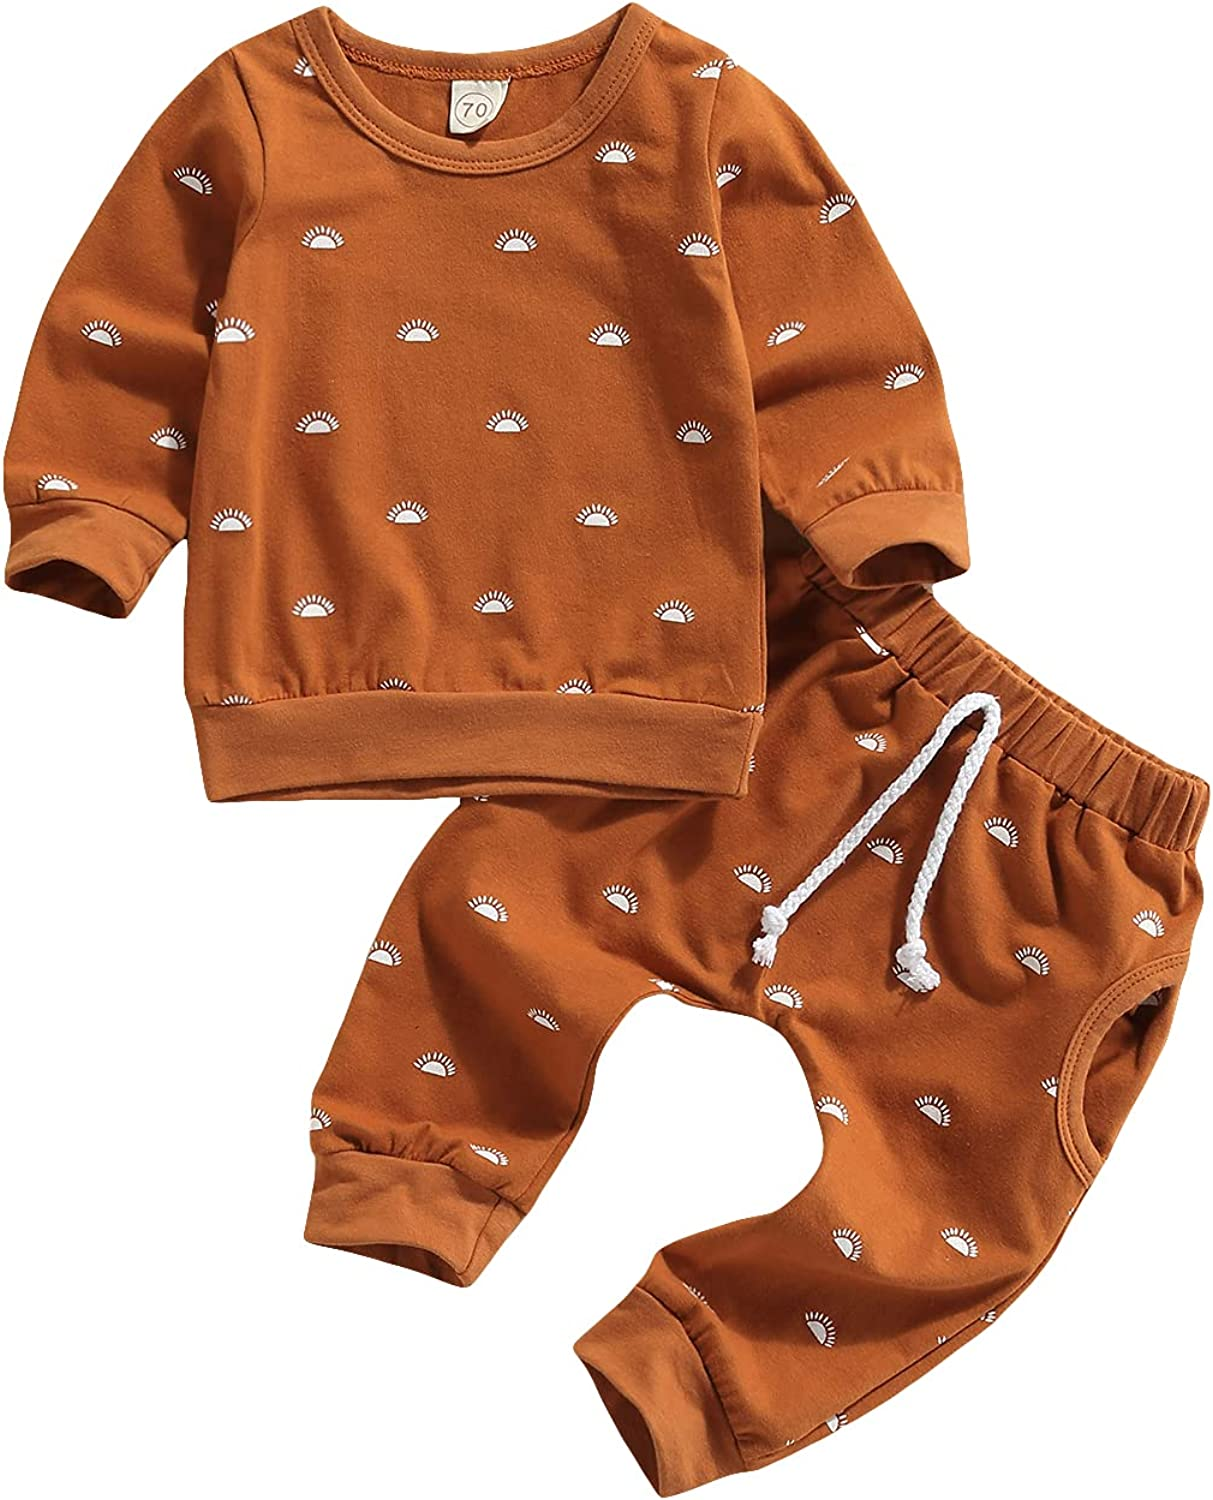 DBZoo Infant Newborn Baby Boy Girl Clothes Long Sleeve Crew Neck Cotton T-Shirt Tops+Pants 2 Piece Fall Outfits Set